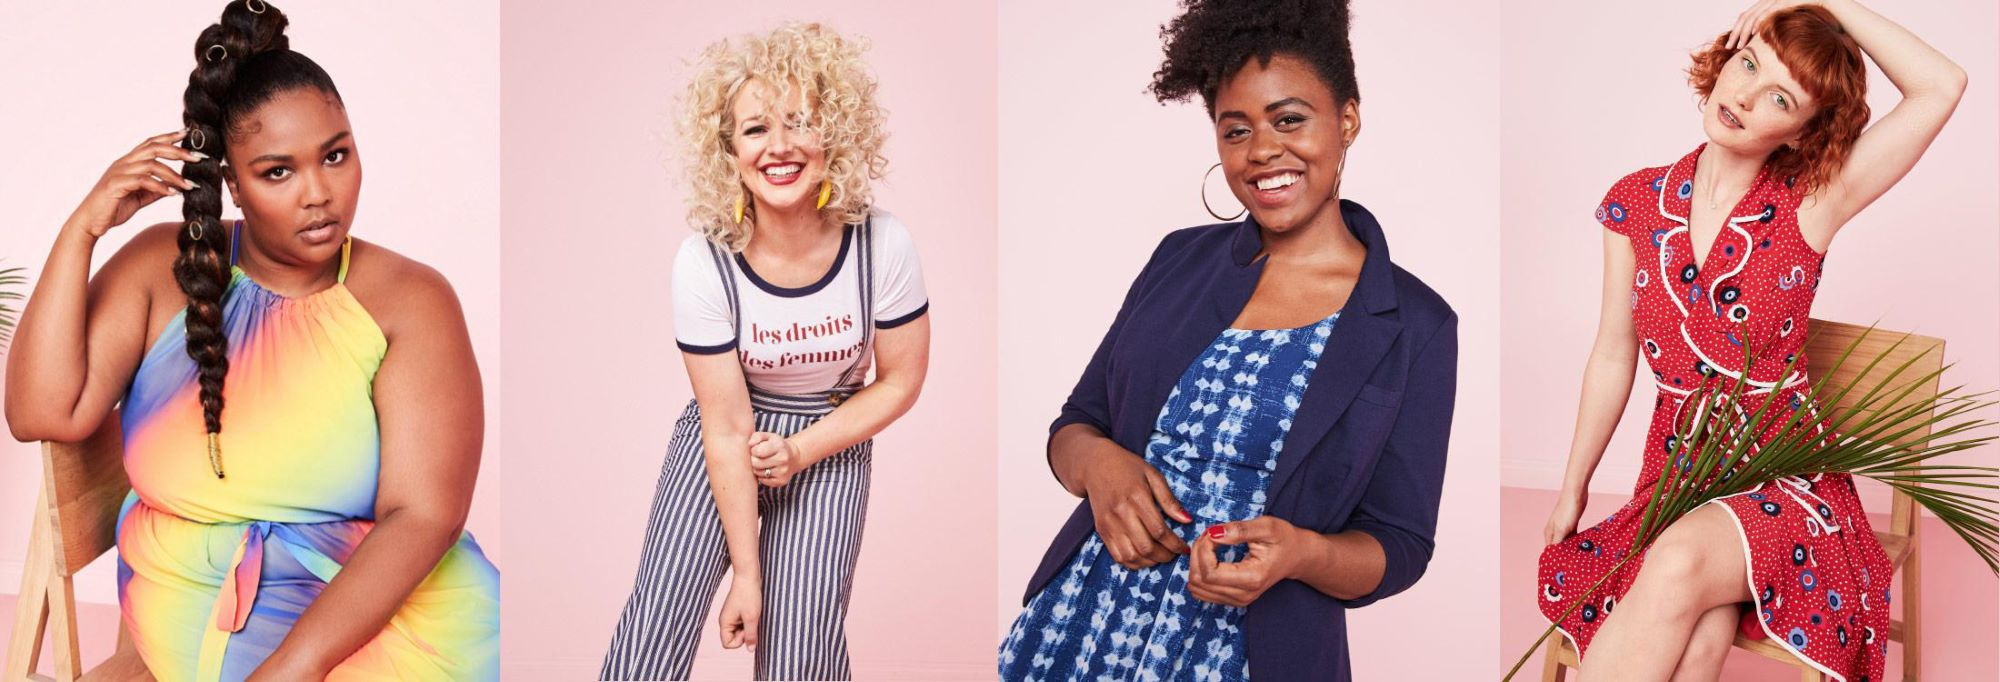 Vintage-style millennial brand ModCloth has partnered with Klarna to give shoppers access to an interest-free, buy now, pay later service.